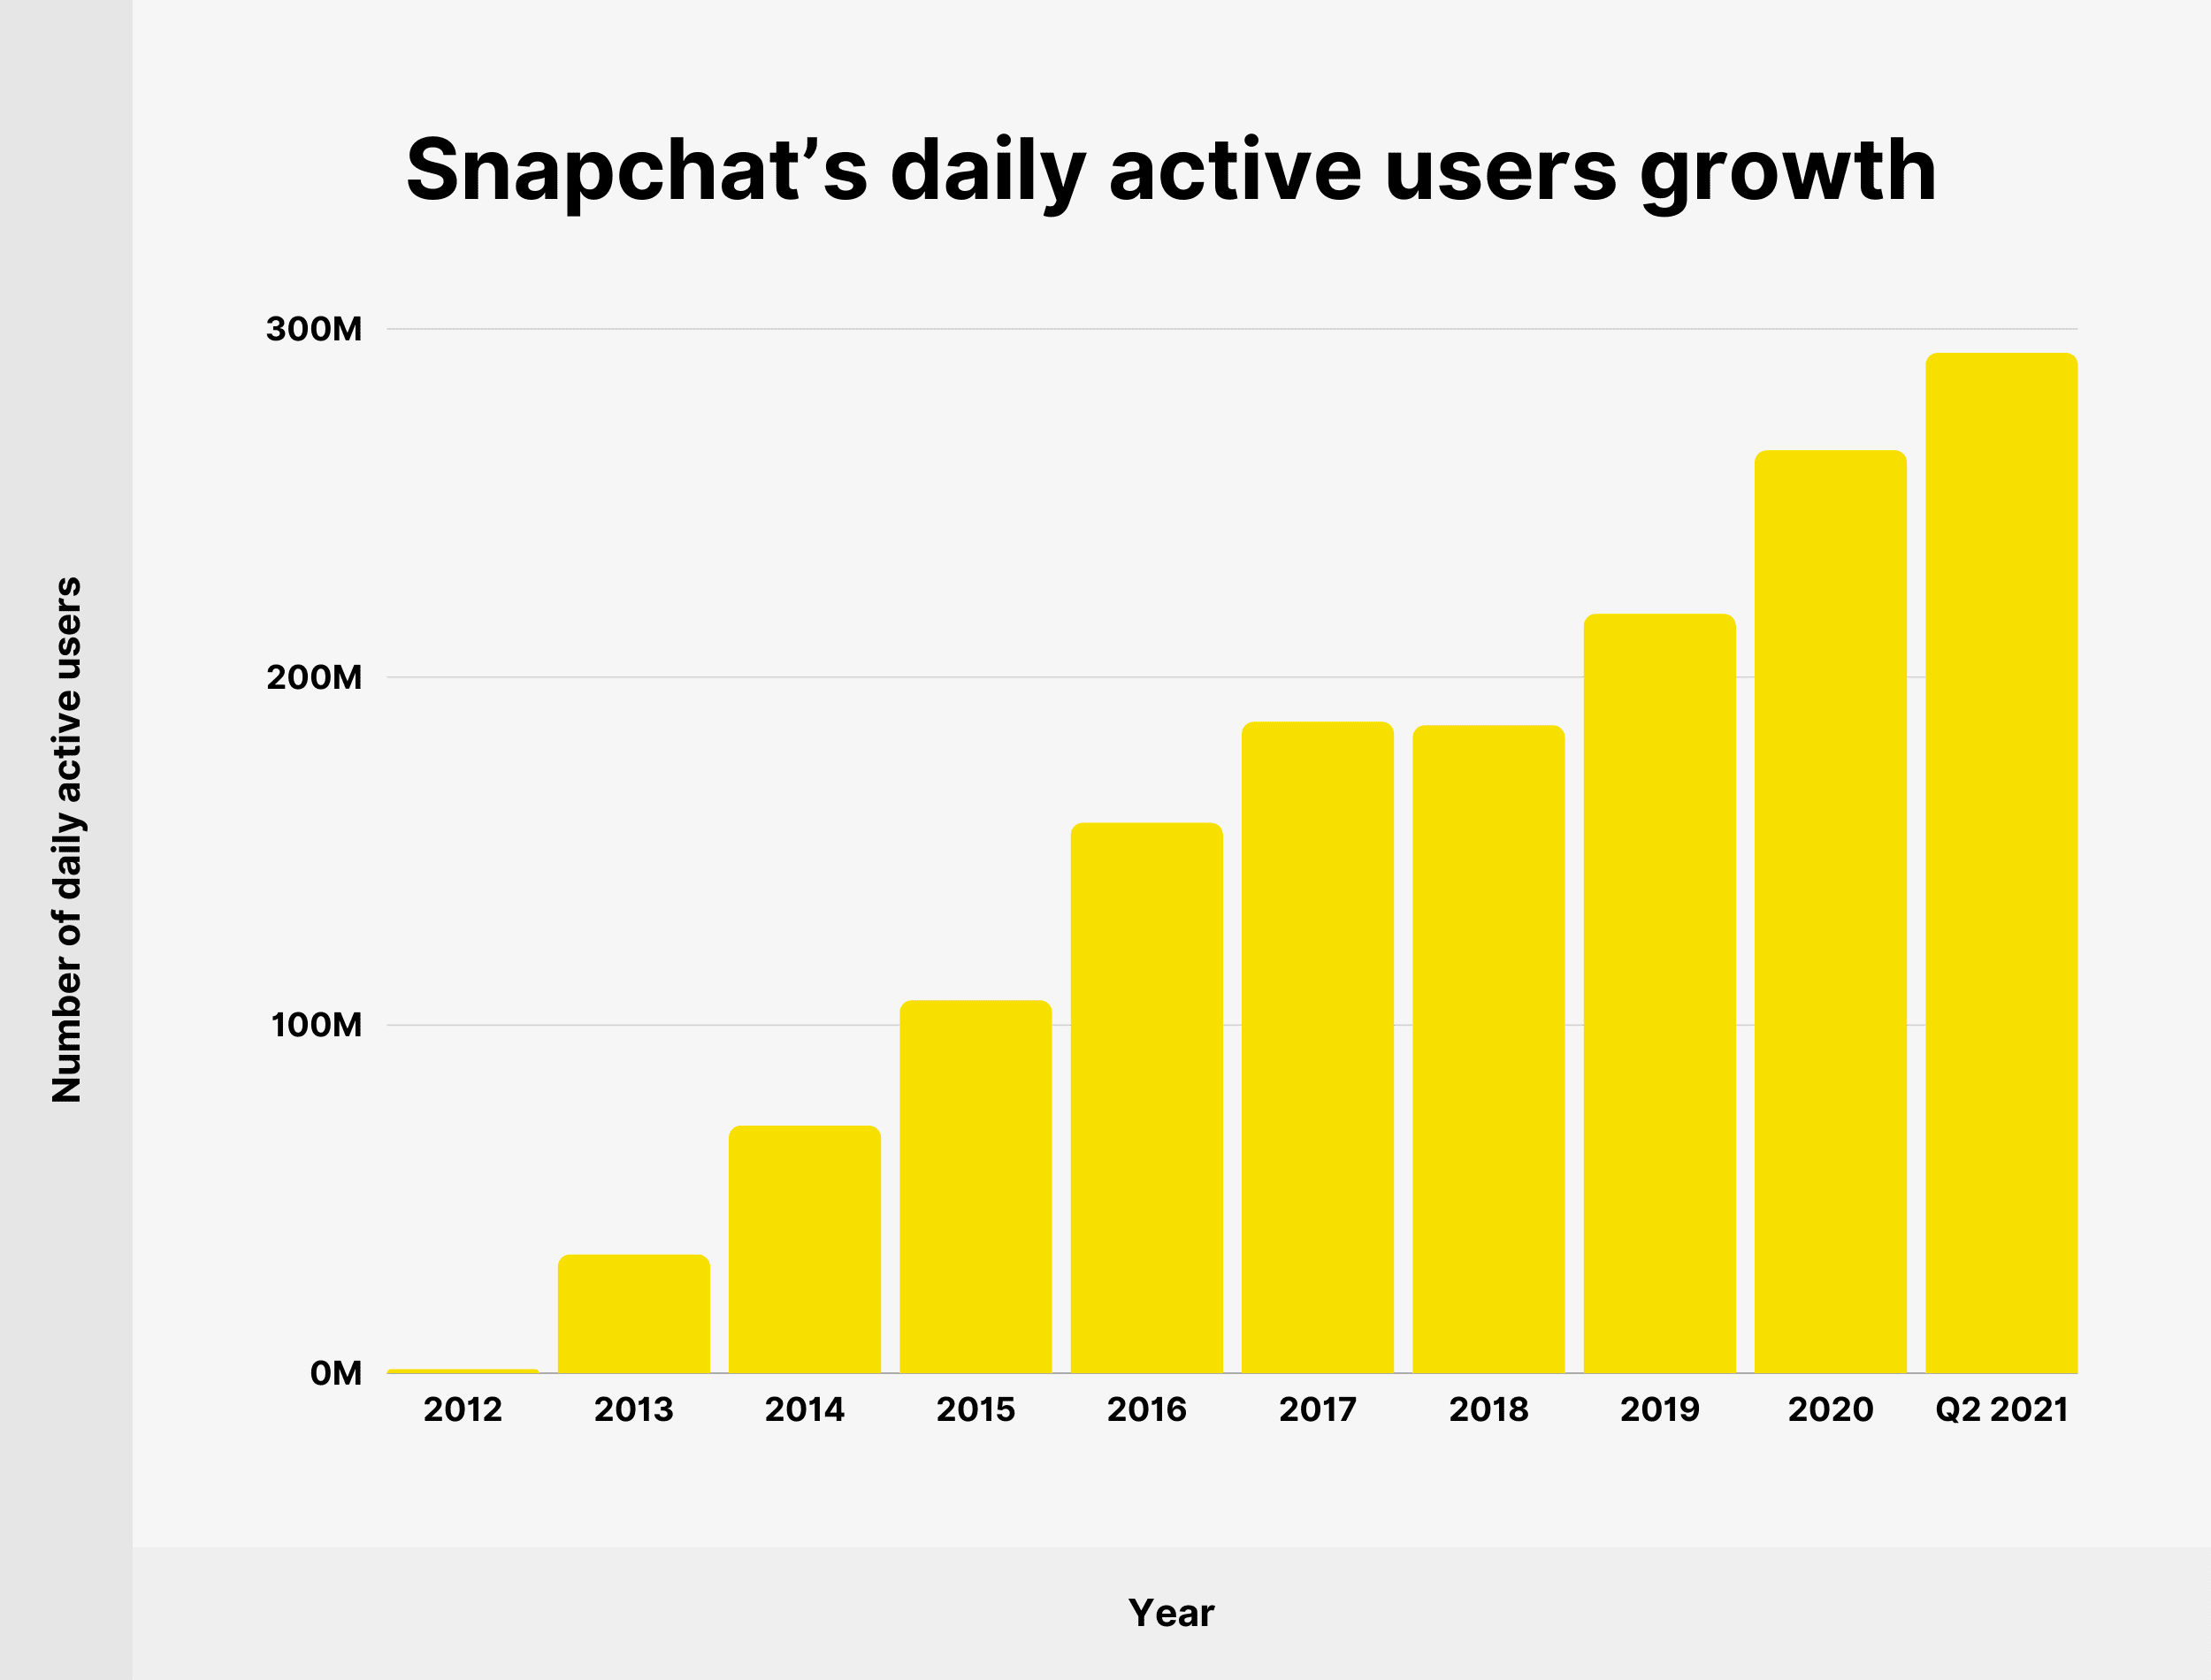 Snapchat's daily active users growth